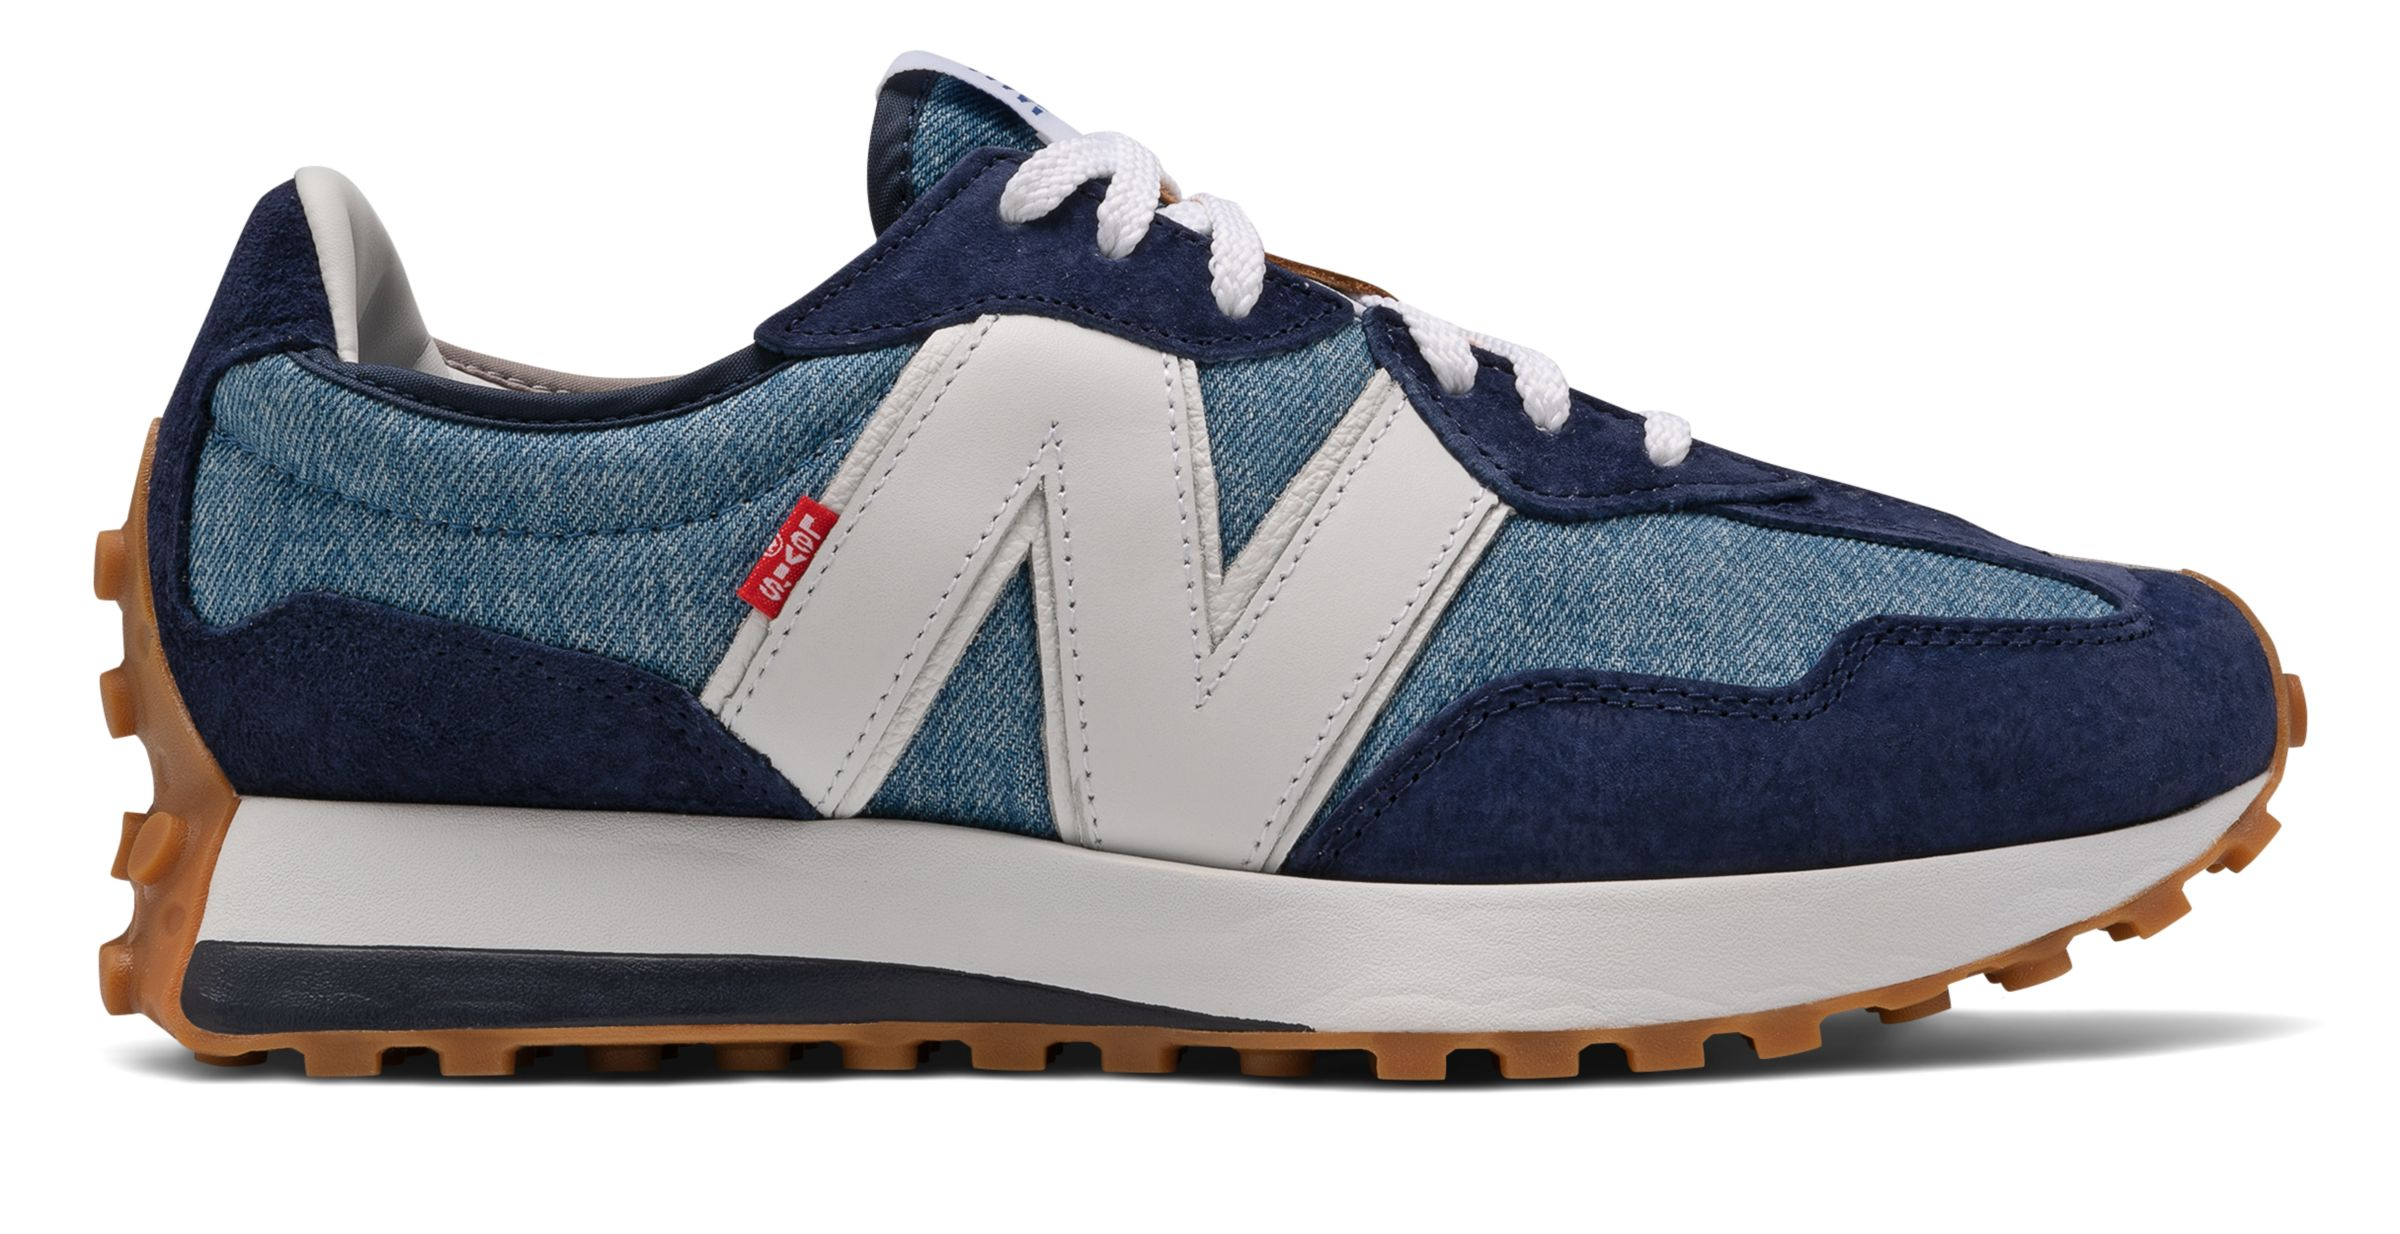 NB New Balance x Levis 327, MS327LVA, Navy with White